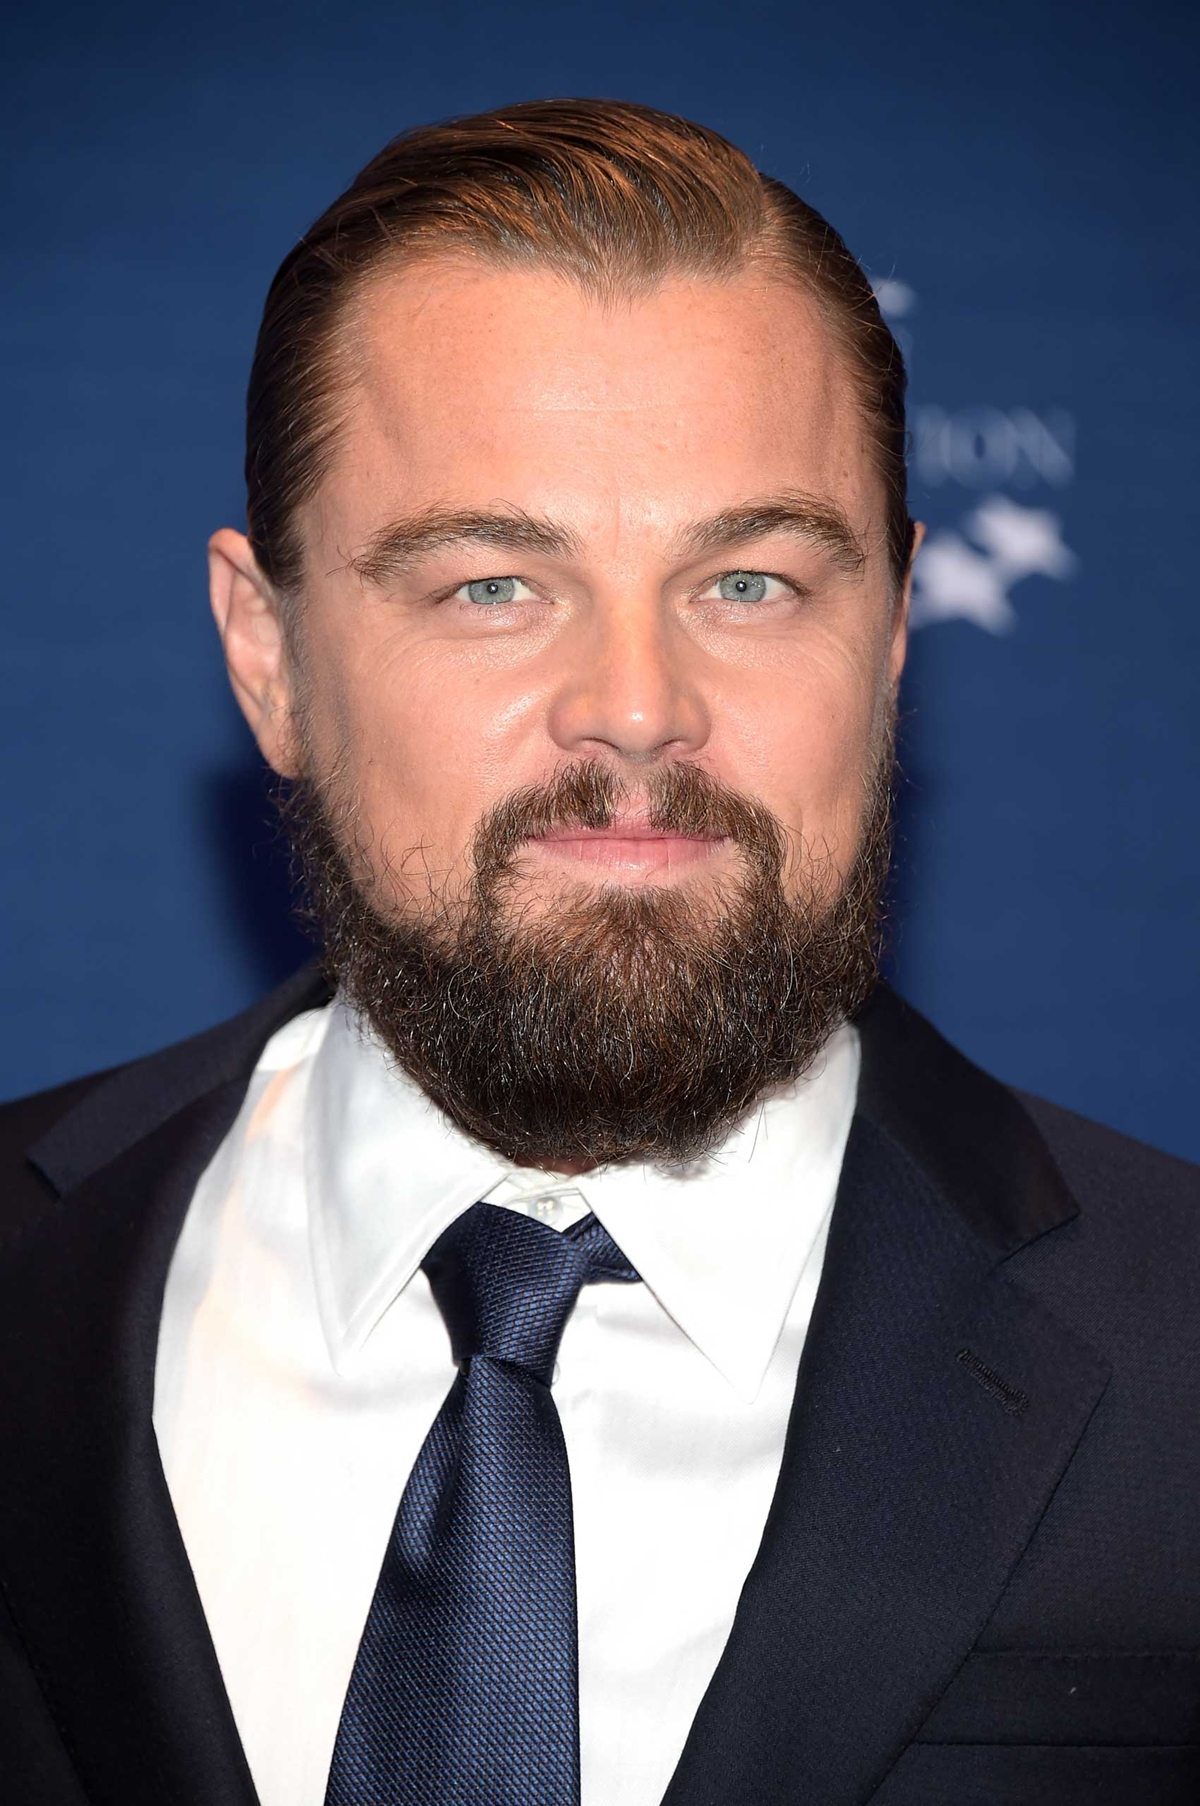 POST 10 Photos Leonardo DiCaprio Does NOT Want You To See